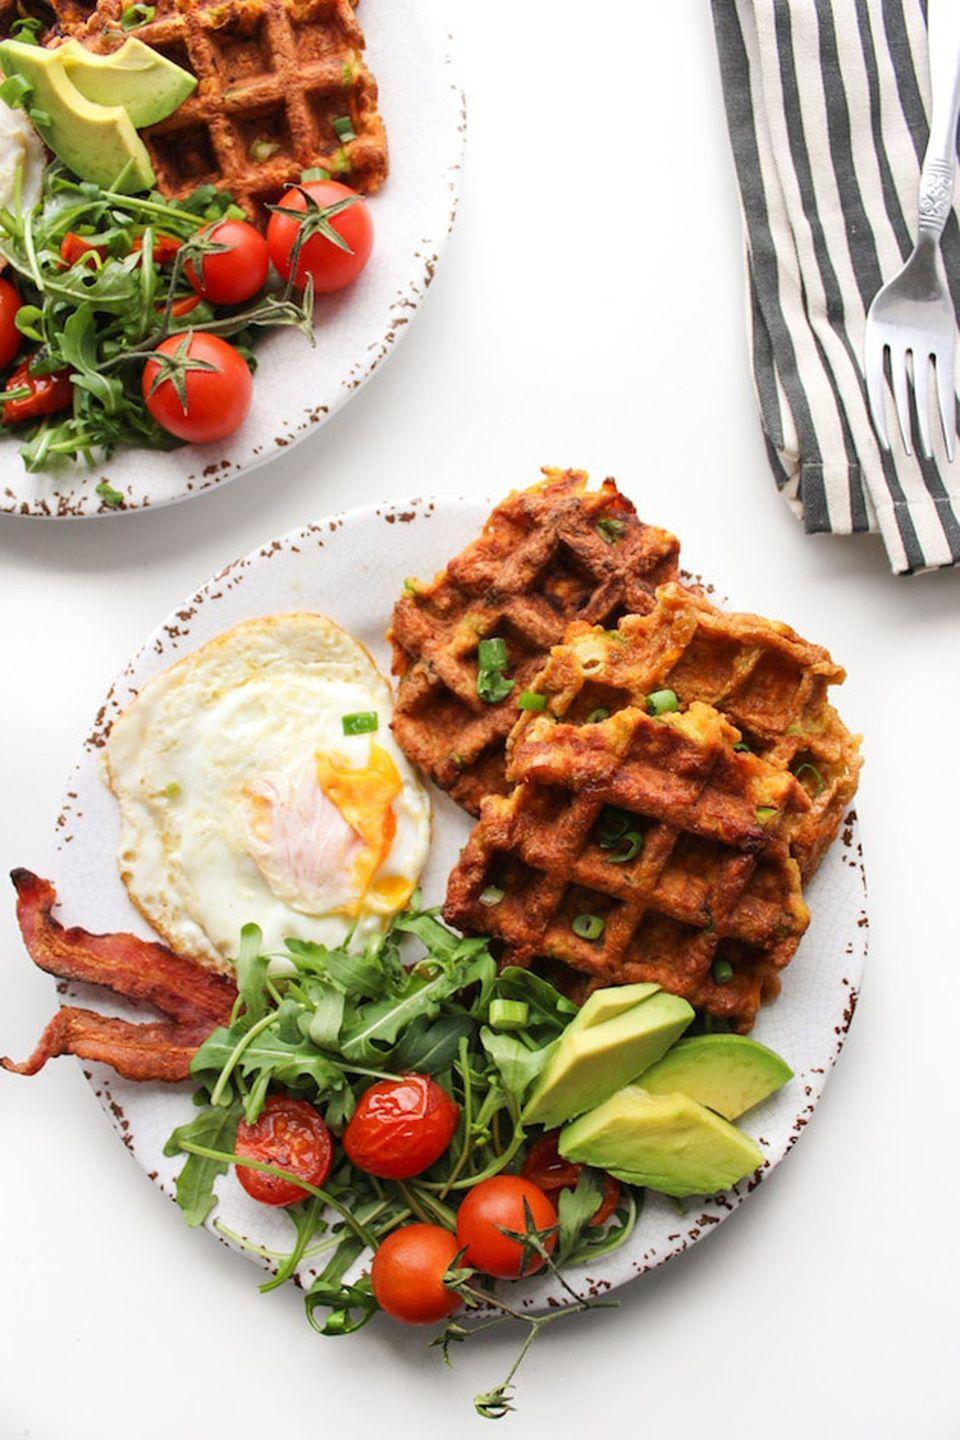 """<p>Pair your healthy waffles with bacon and eggs for an unforgettably delicious wake-up call.</p><p><strong>Get the recipe at <a href=""""https://www.asaucykitchen.com/paleo-sweet-potato-waffles/"""" rel=""""nofollow noopener"""" target=""""_blank"""" data-ylk=""""slk:A Saucy Kitchen"""" class=""""link rapid-noclick-resp"""">A Saucy Kitchen</a>.</strong><br></p><p><strong><a class=""""link rapid-noclick-resp"""" href=""""https://www.amazon.com/Cuisinart-CTG-00-BG-Boxed-Grater/dp/B004YZENBY/?tag=syn-yahoo-20&ascsubtag=%5Bartid%7C10050.g.877%5Bsrc%7Cyahoo-us"""" rel=""""nofollow noopener"""" target=""""_blank"""" data-ylk=""""slk:SHOP GRATERS"""">SHOP GRATERS</a><br></strong></p>"""